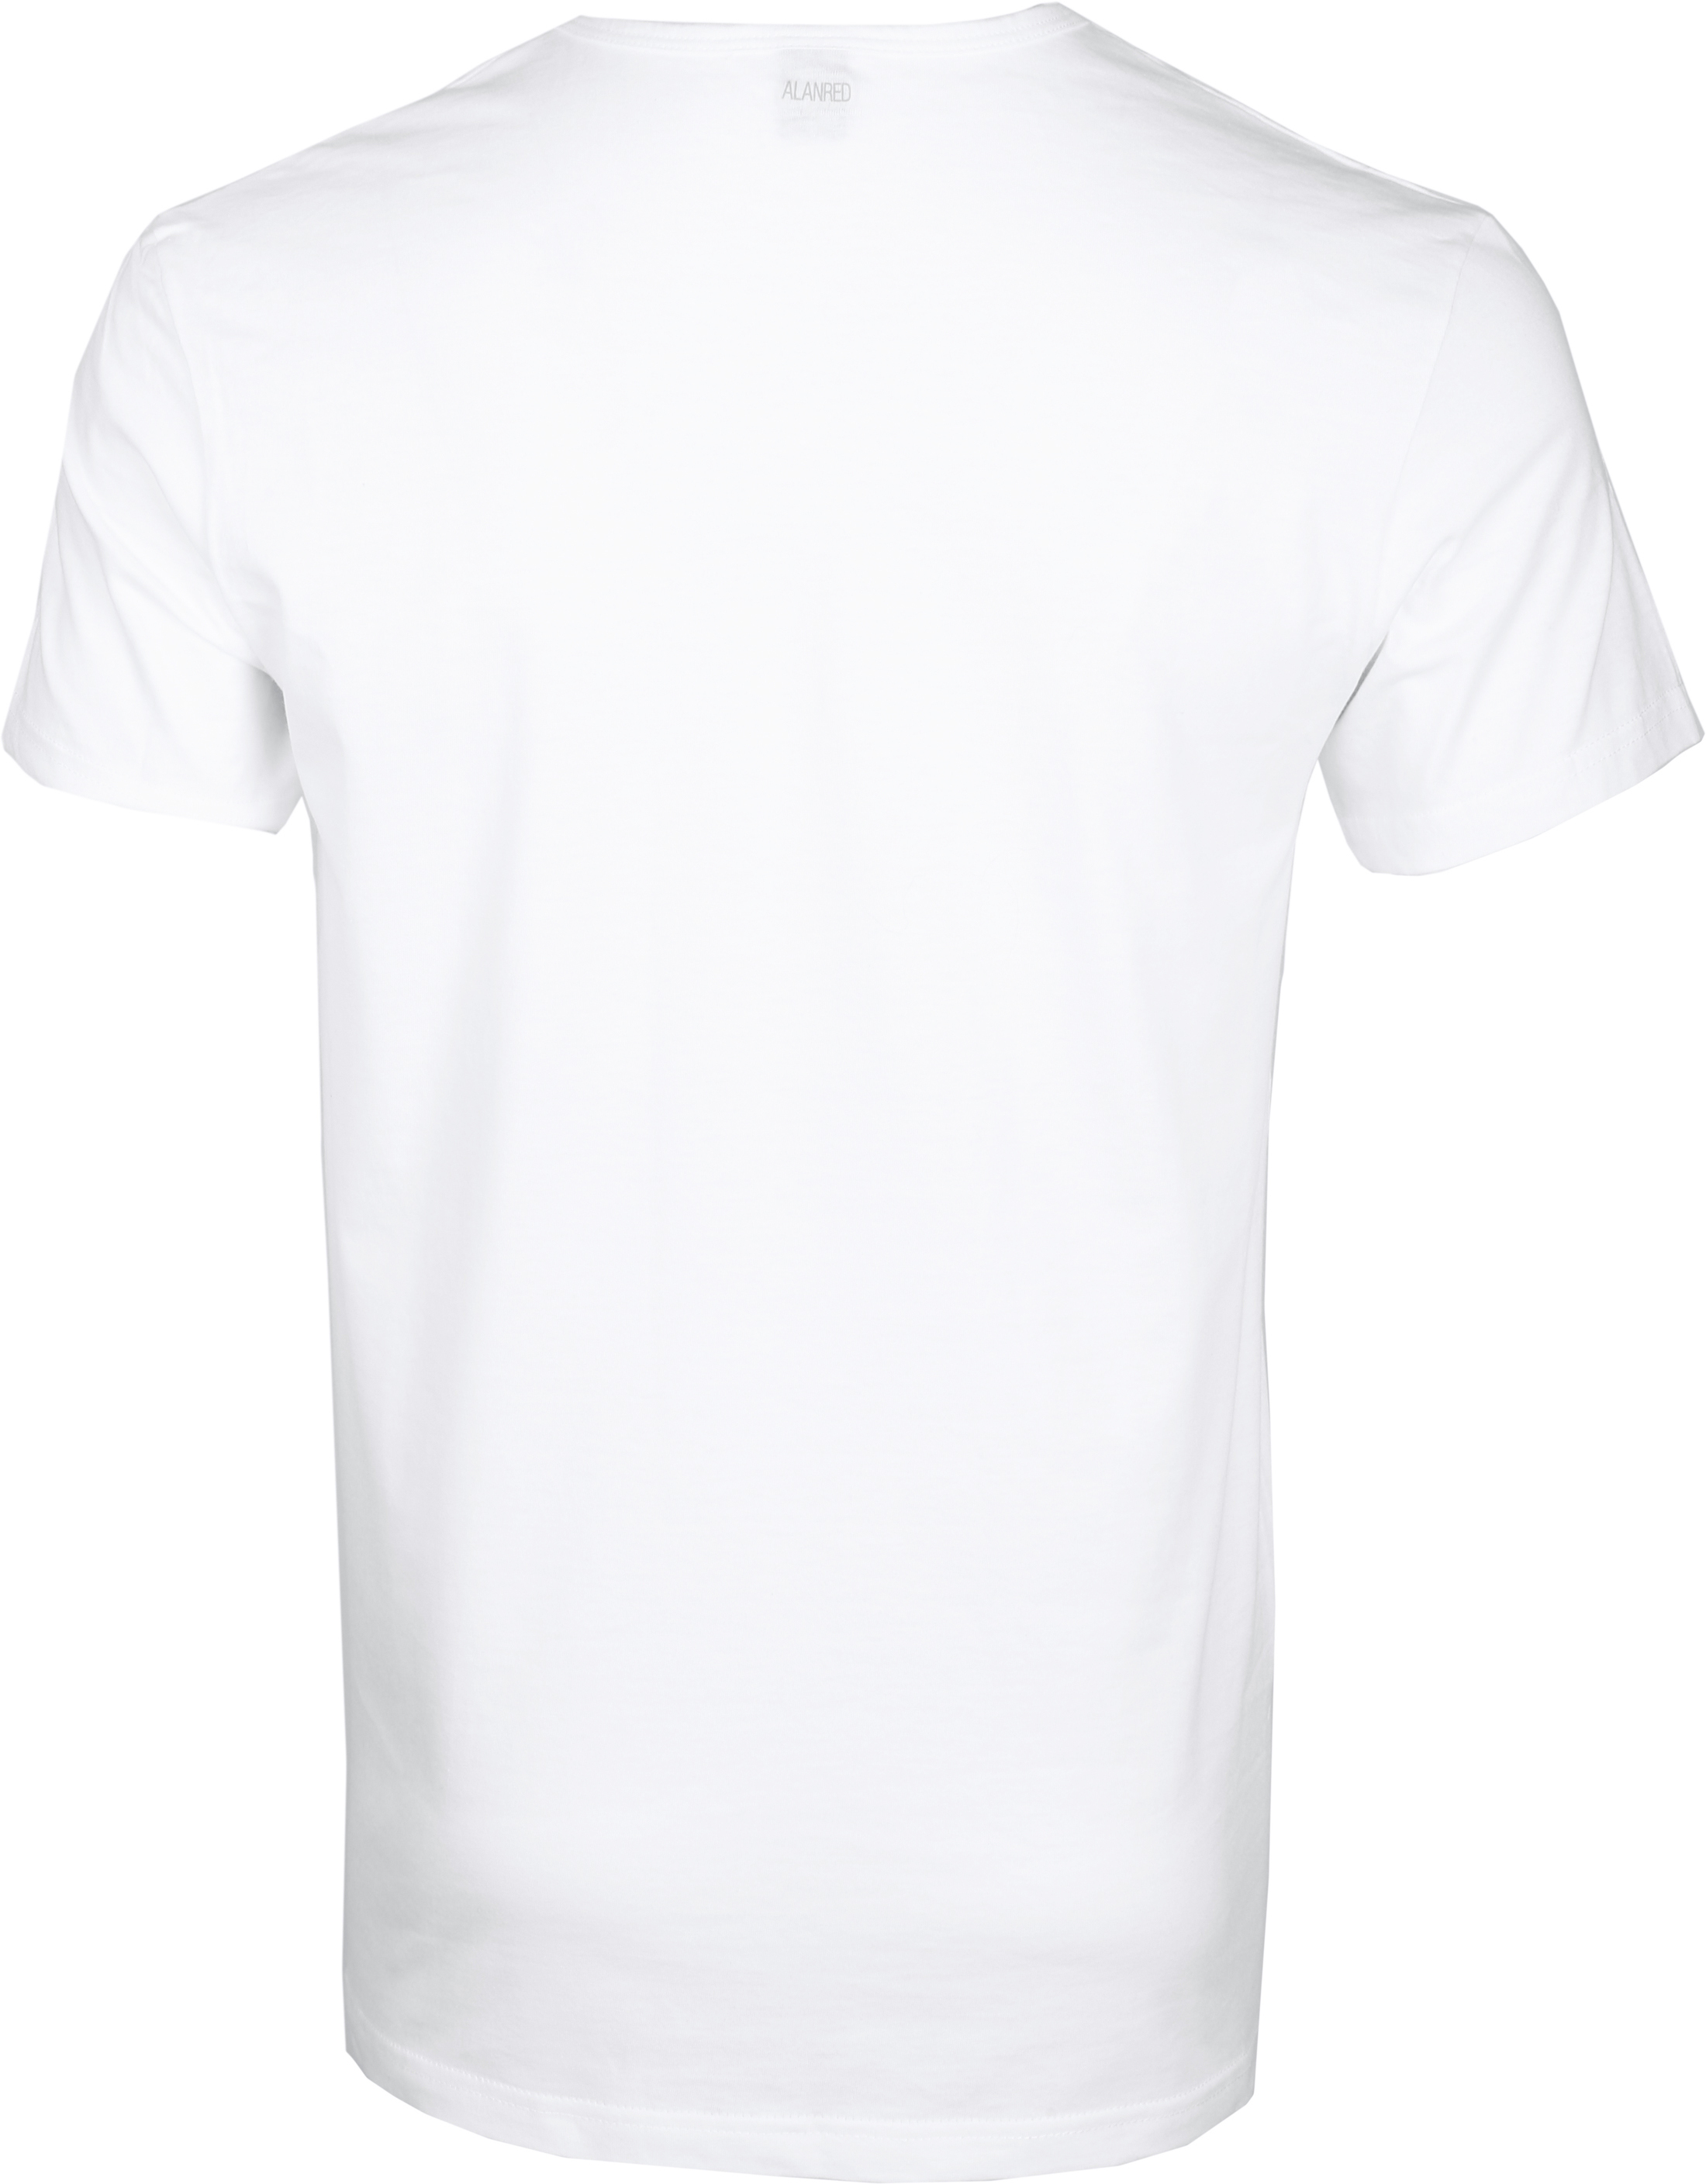 Alan Red Dean V-Neck T-shirt White 2-Pack foto 1